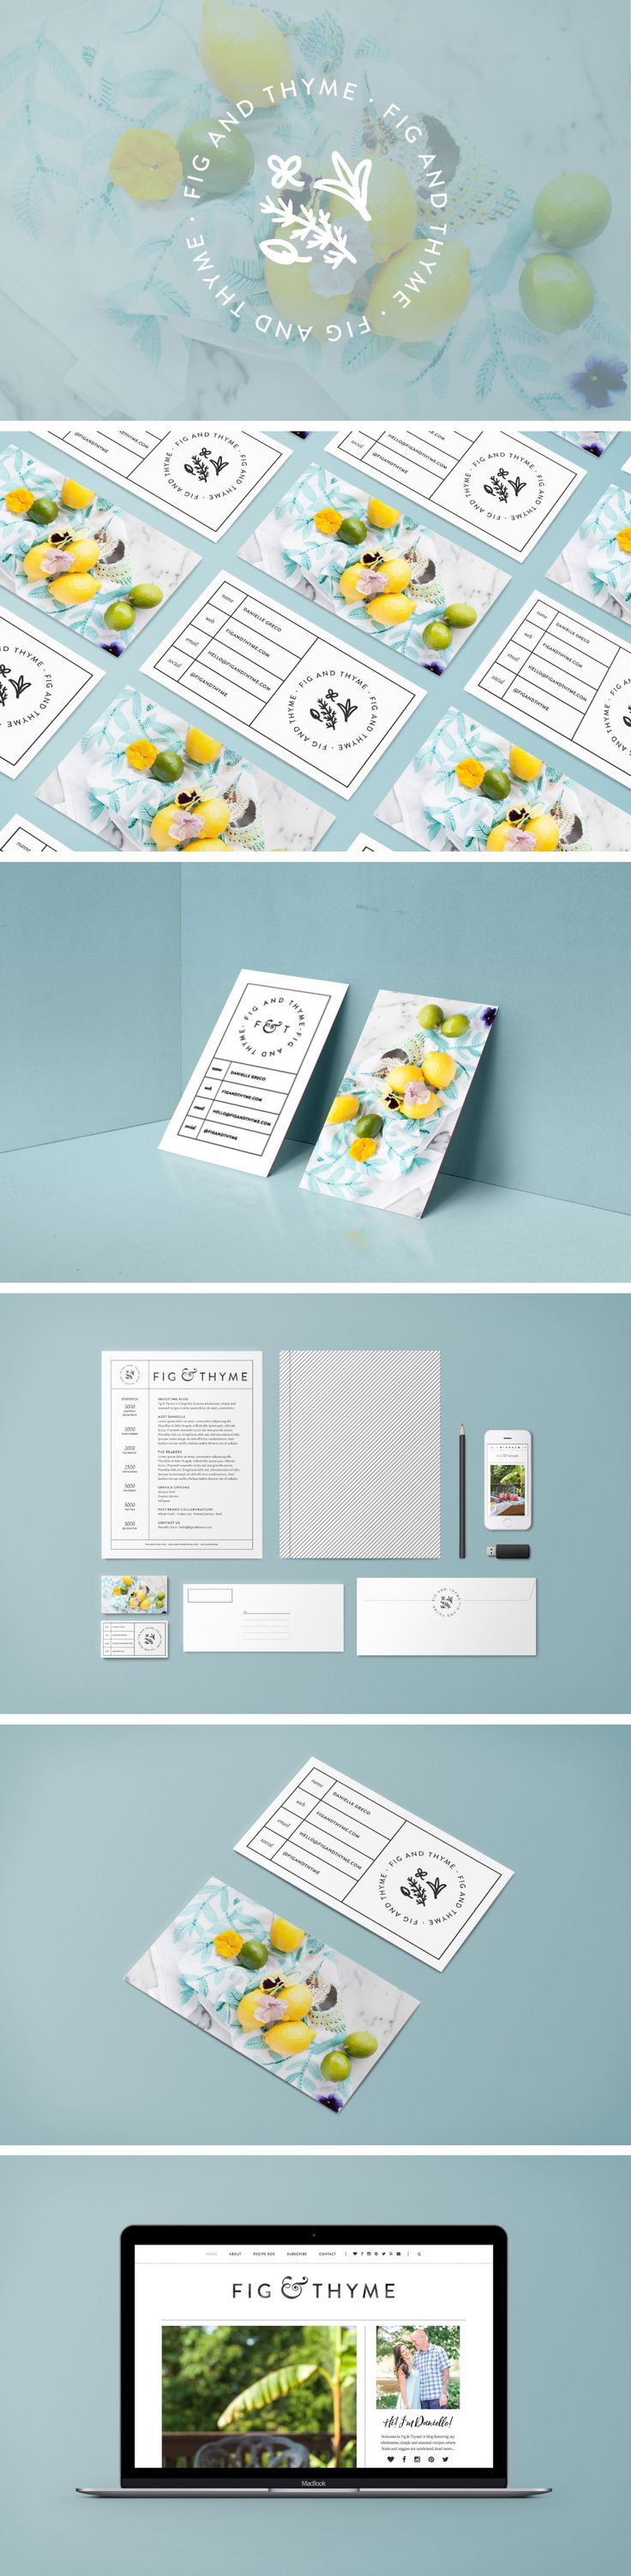 Fig and Thyme: Food Blog Design